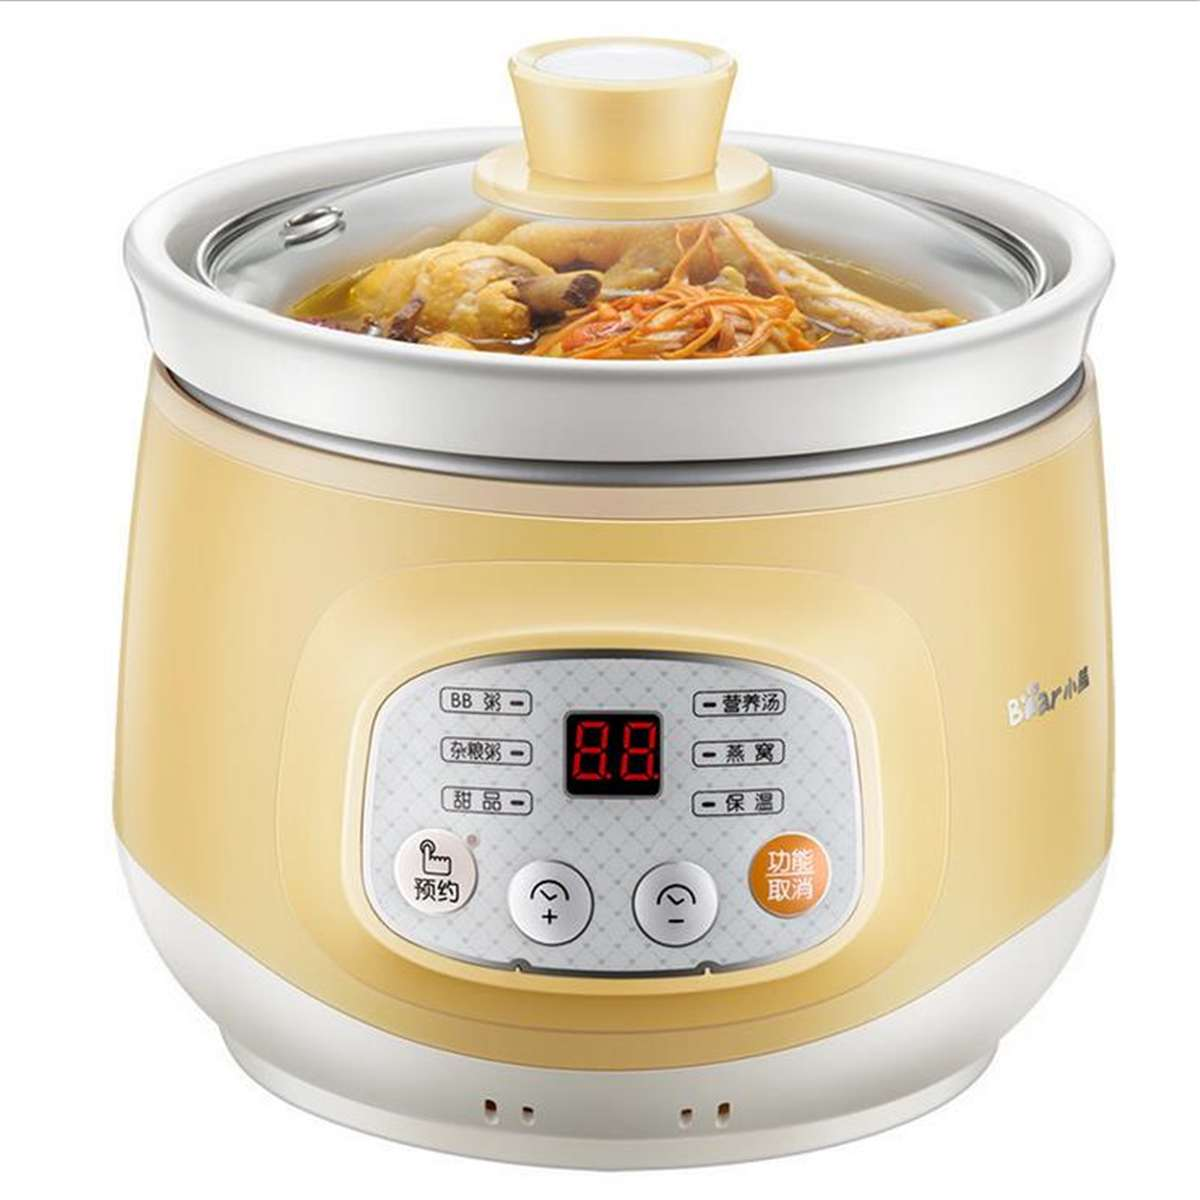 100W Electric Slow Cooker Ceramic Mini Fully Automatic Baby Soup Pot Congee Bird's Nest Stew Pot Multi function Safe Slow Cooker